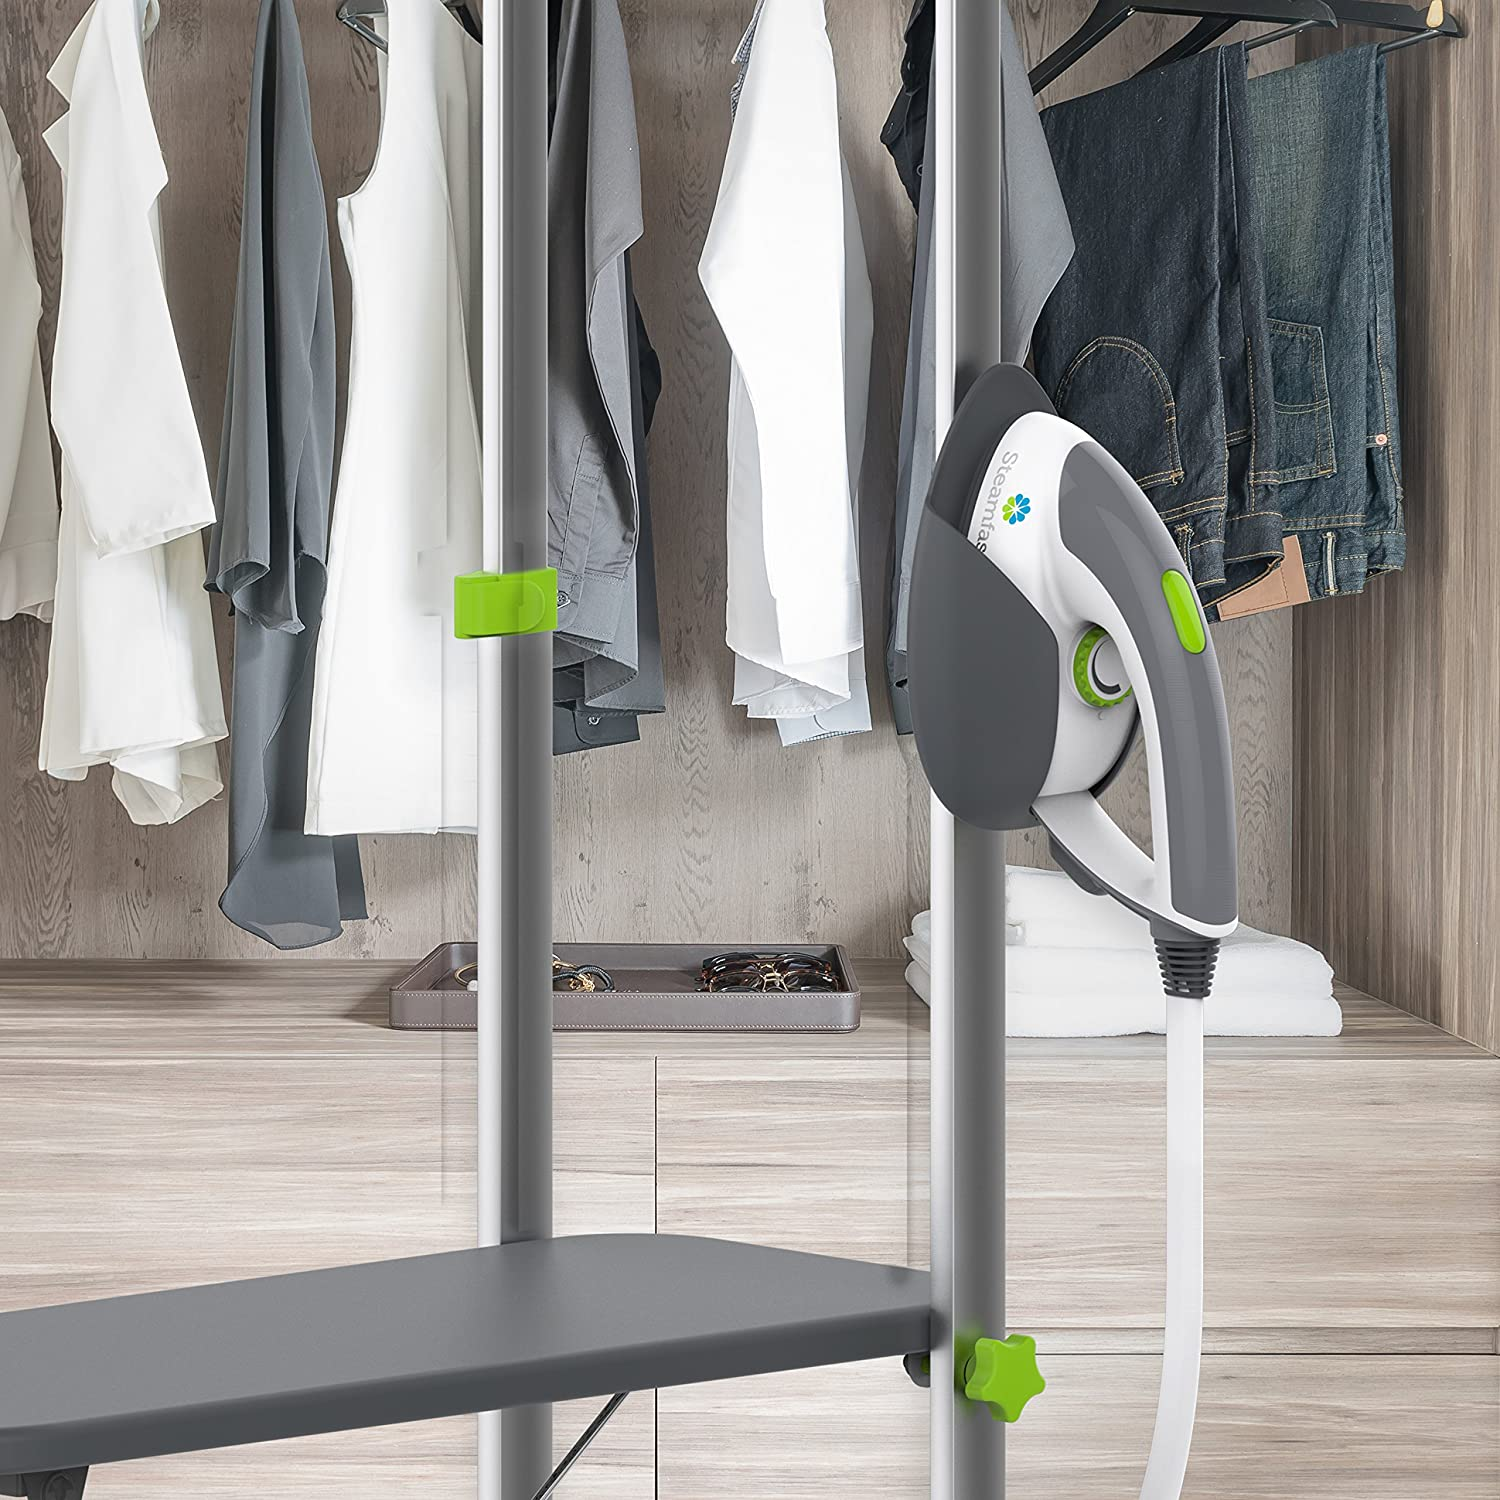 Steamfast SF-580 Professional Dual-Use Iron and Garment Steamer with 33.8-Ounce Water Tank Built-In Ironing Board and Garment Hanger